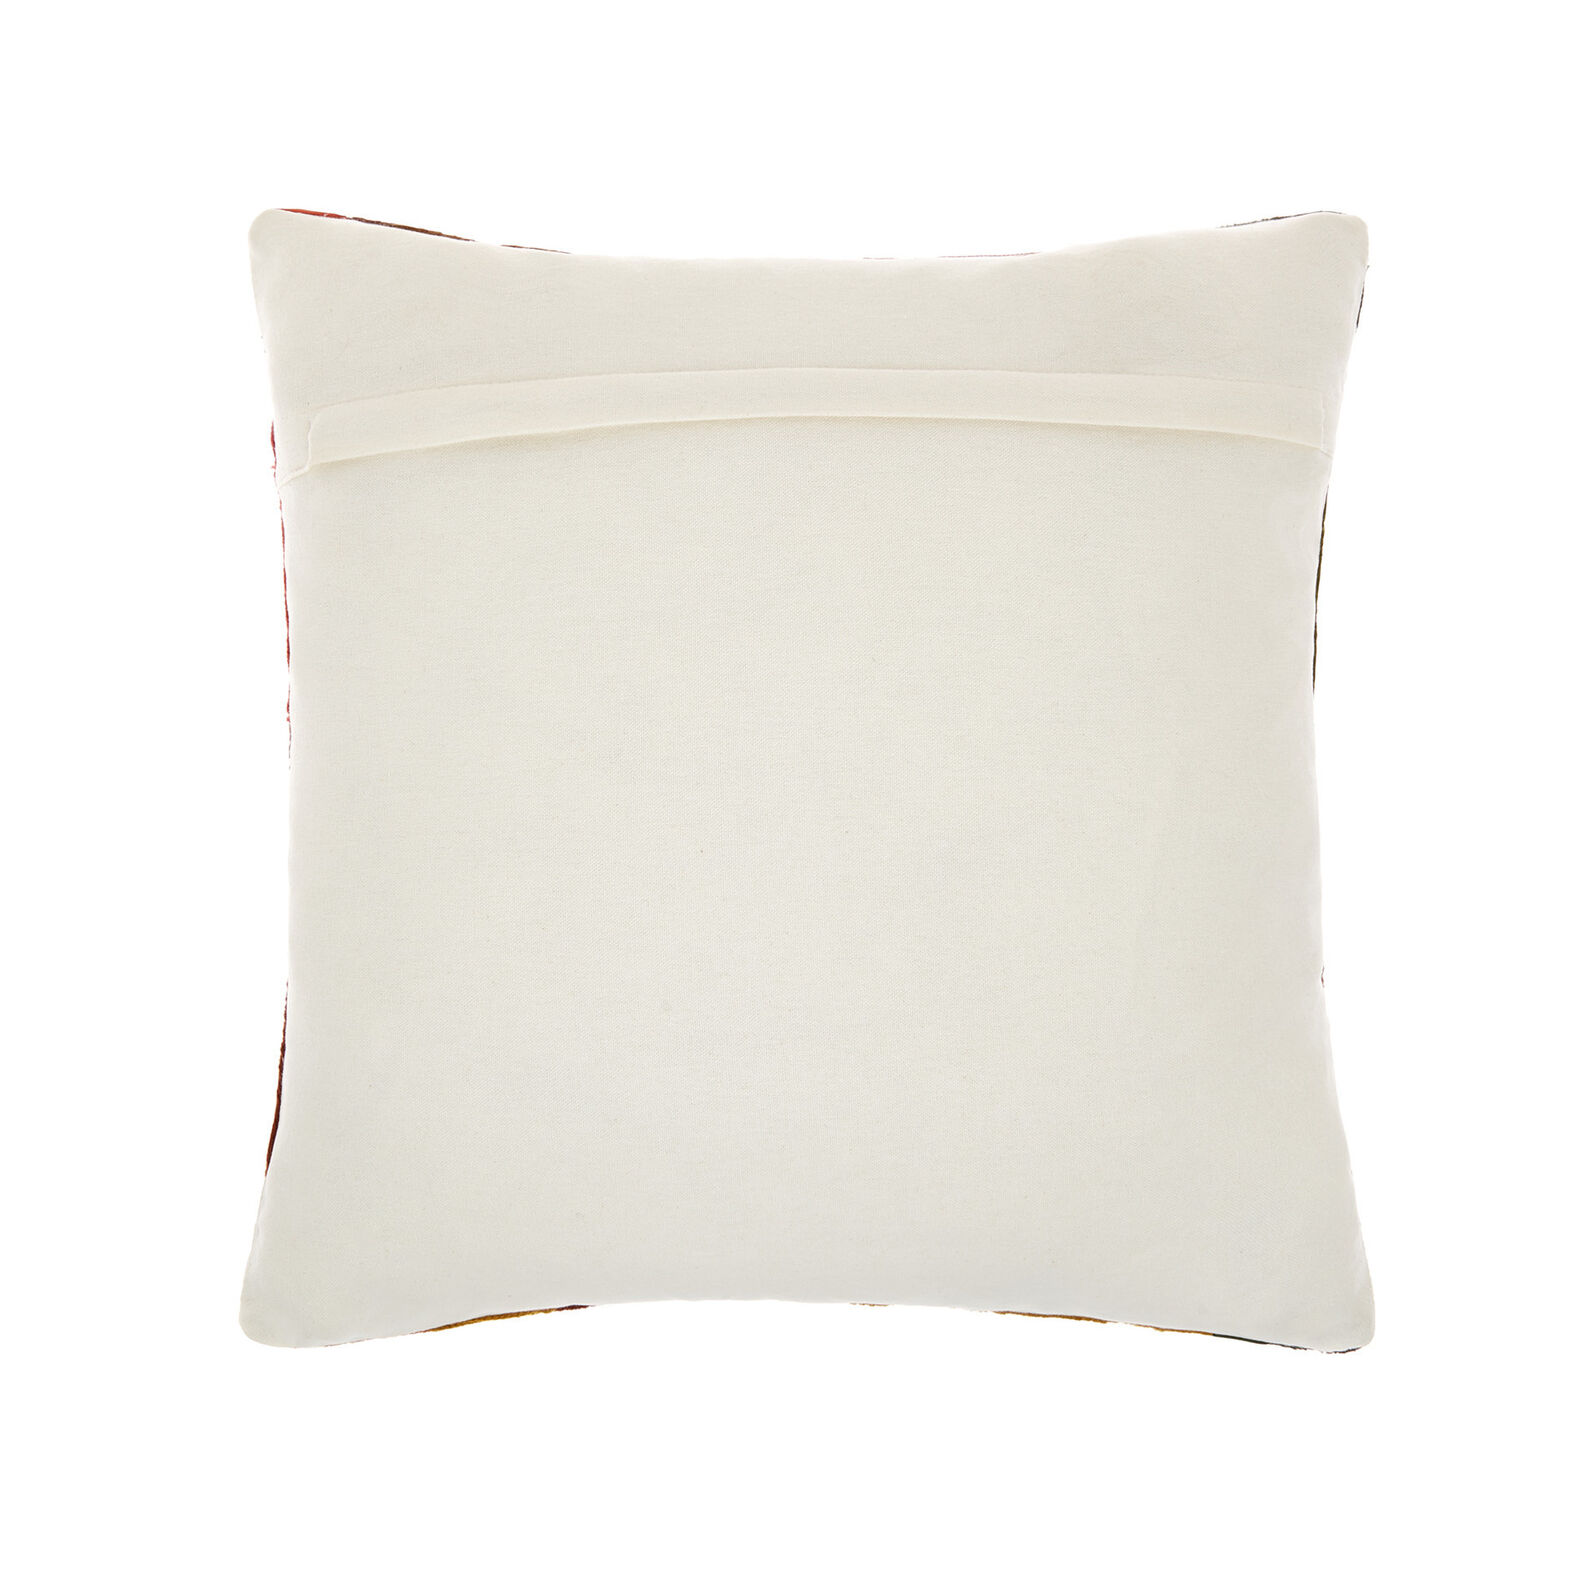 Cotton cushion with leaves embroidery 45x45cm